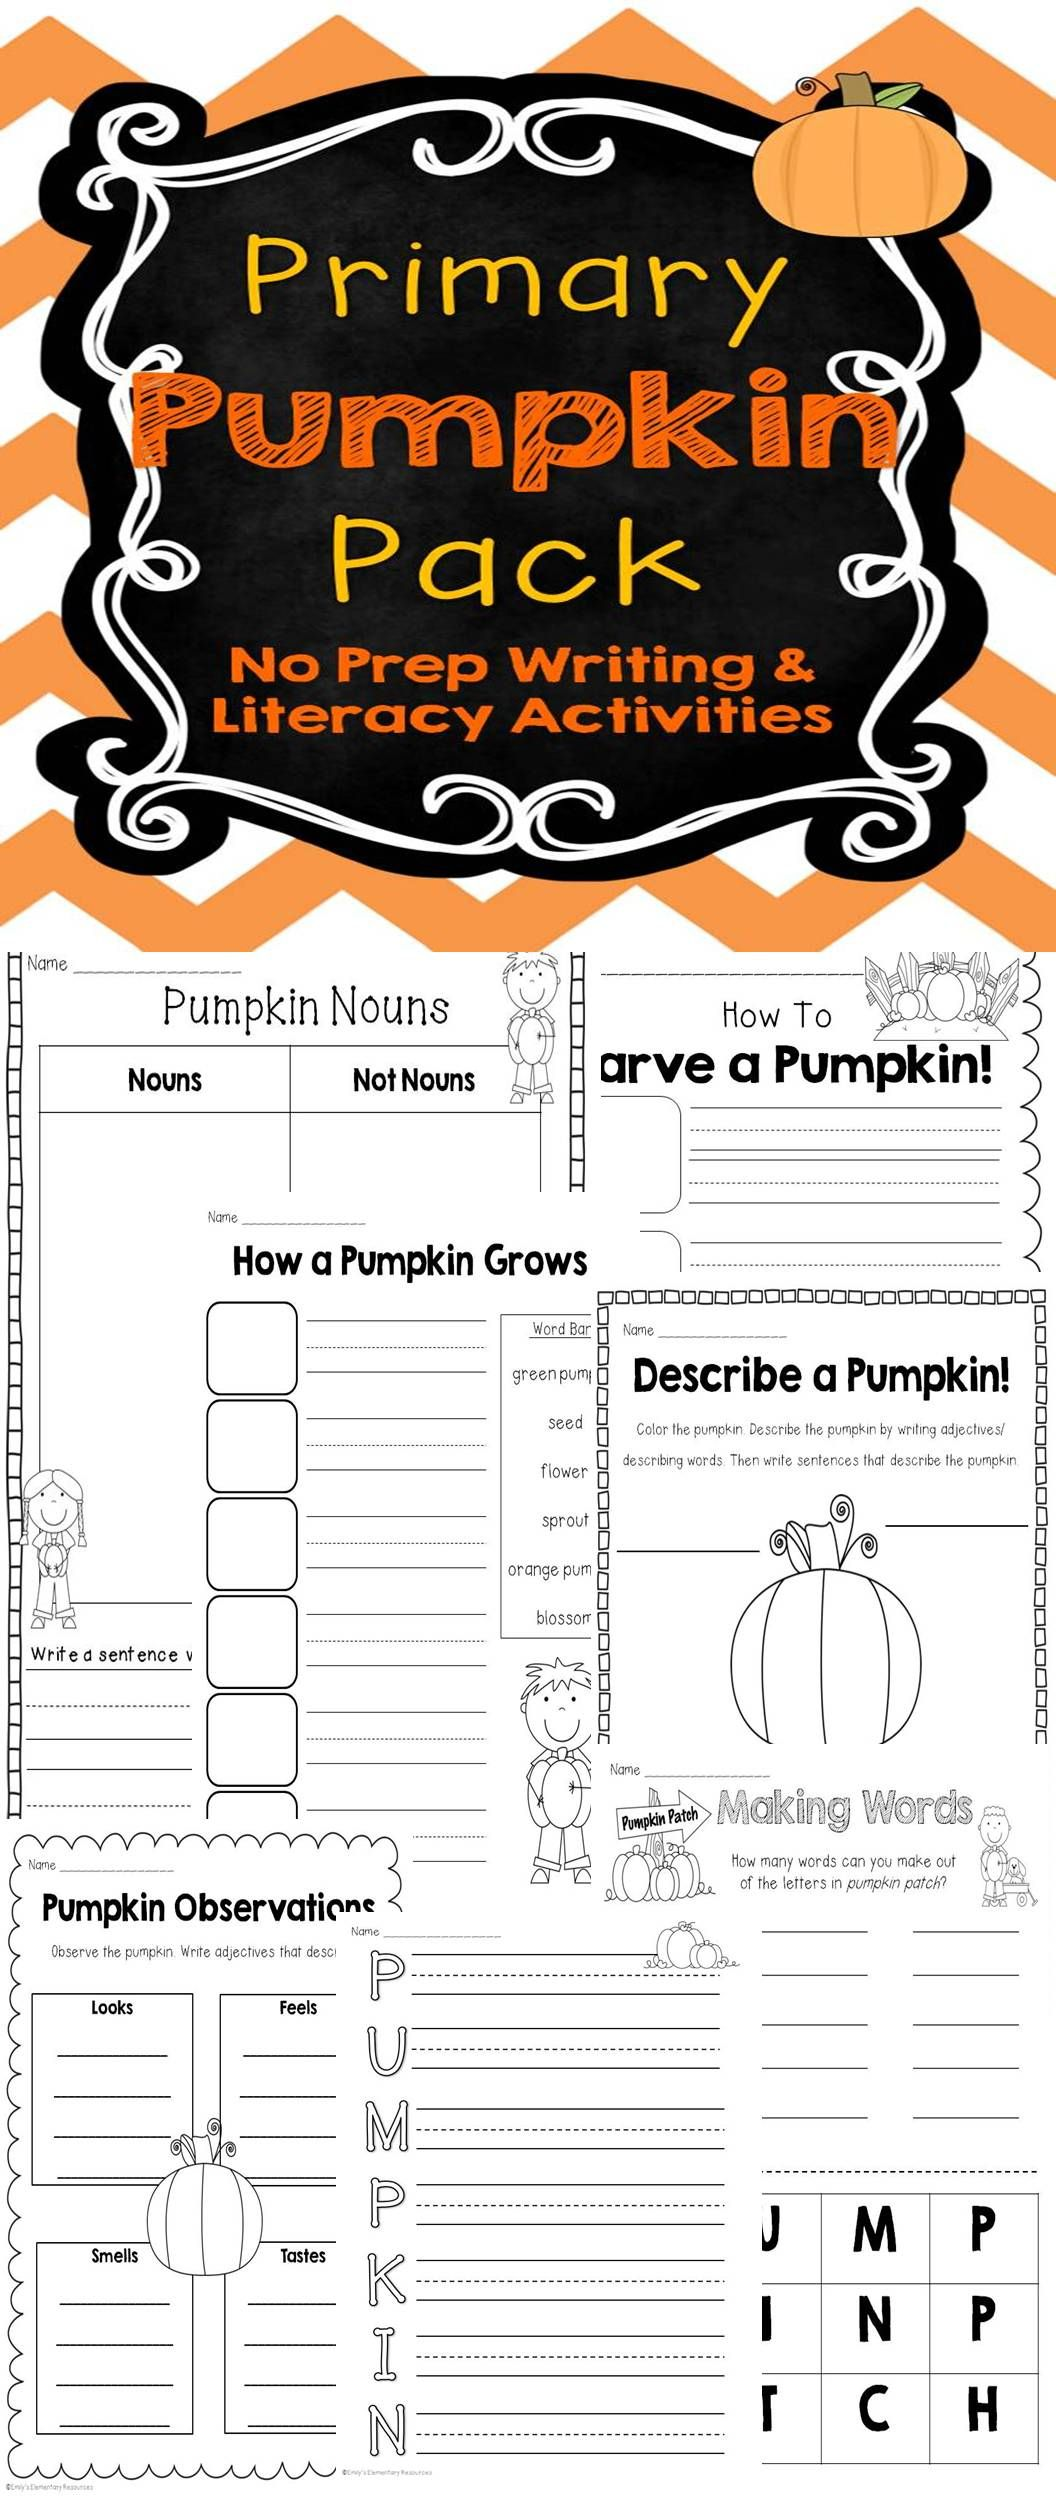 Primary Pumpkin Pack No Prep Writing Amp Literacy